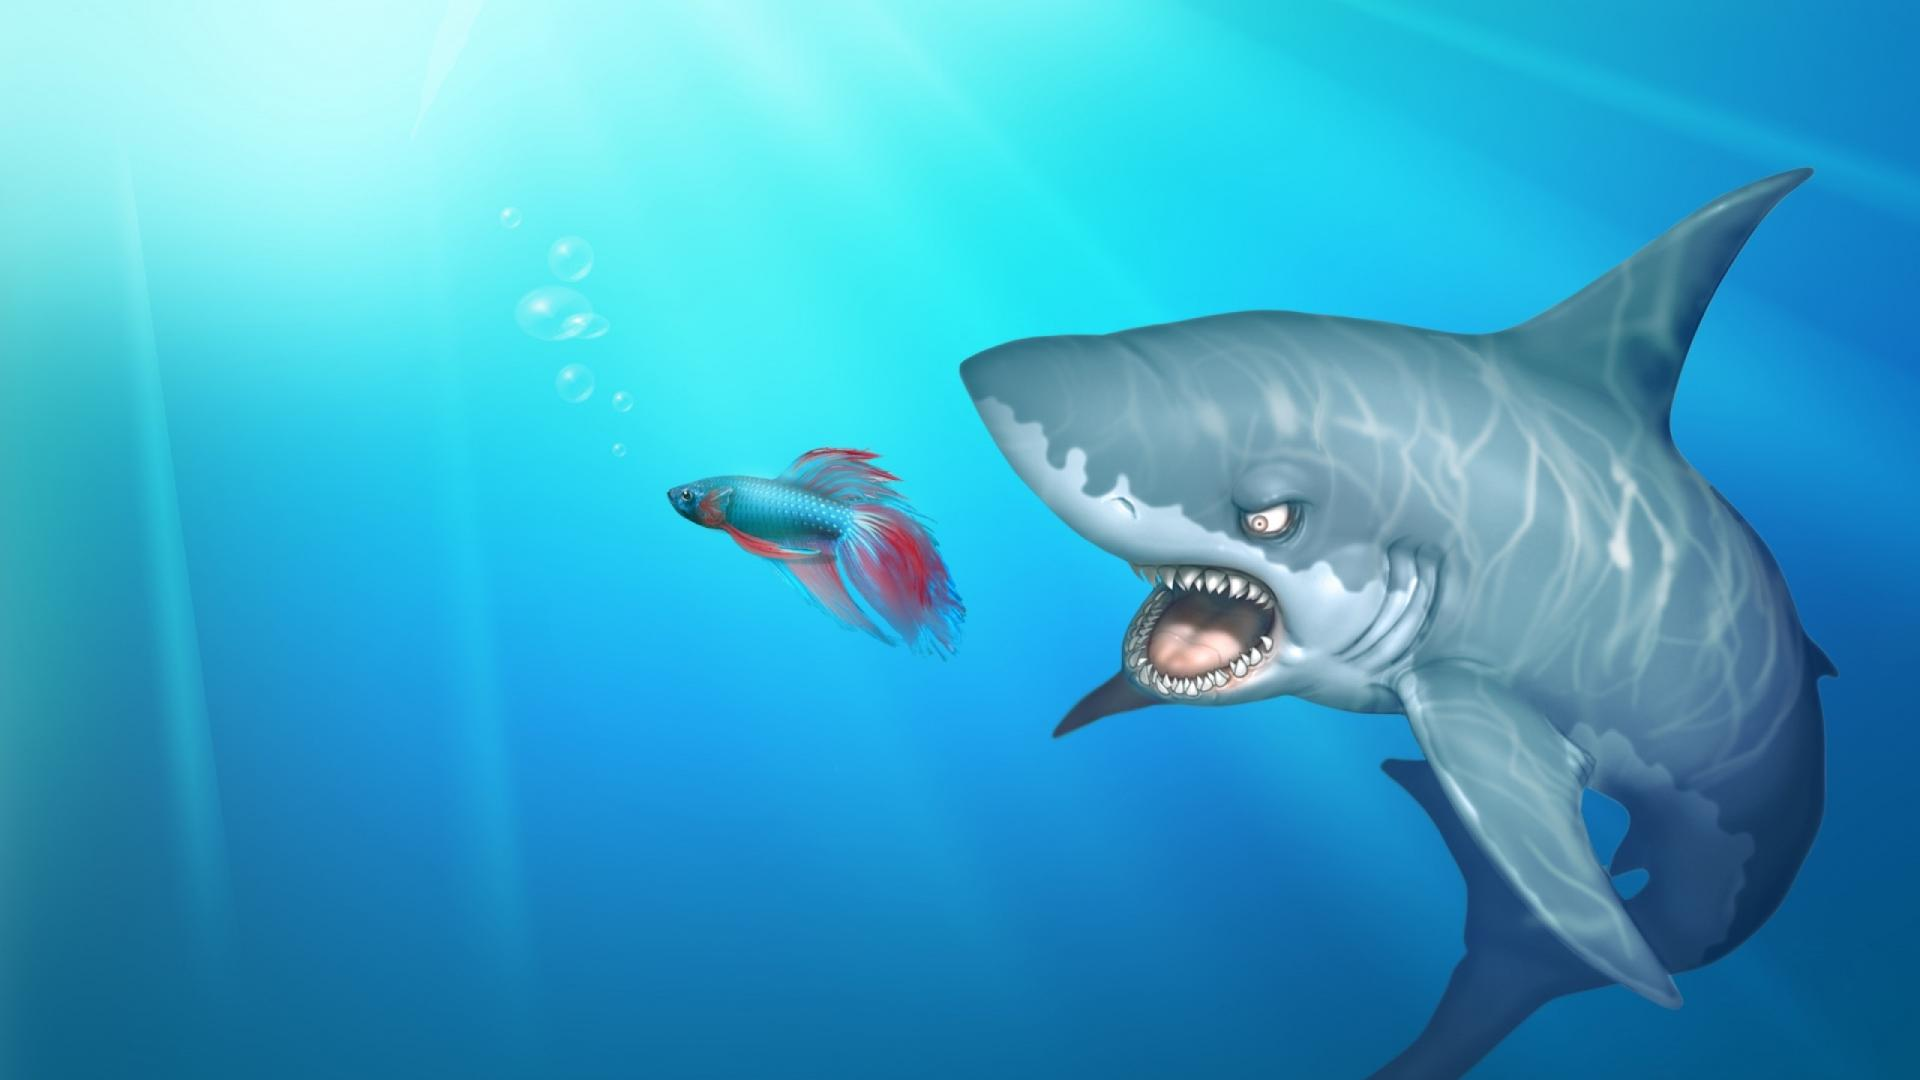 Shark-Backgrounds-Download-Free